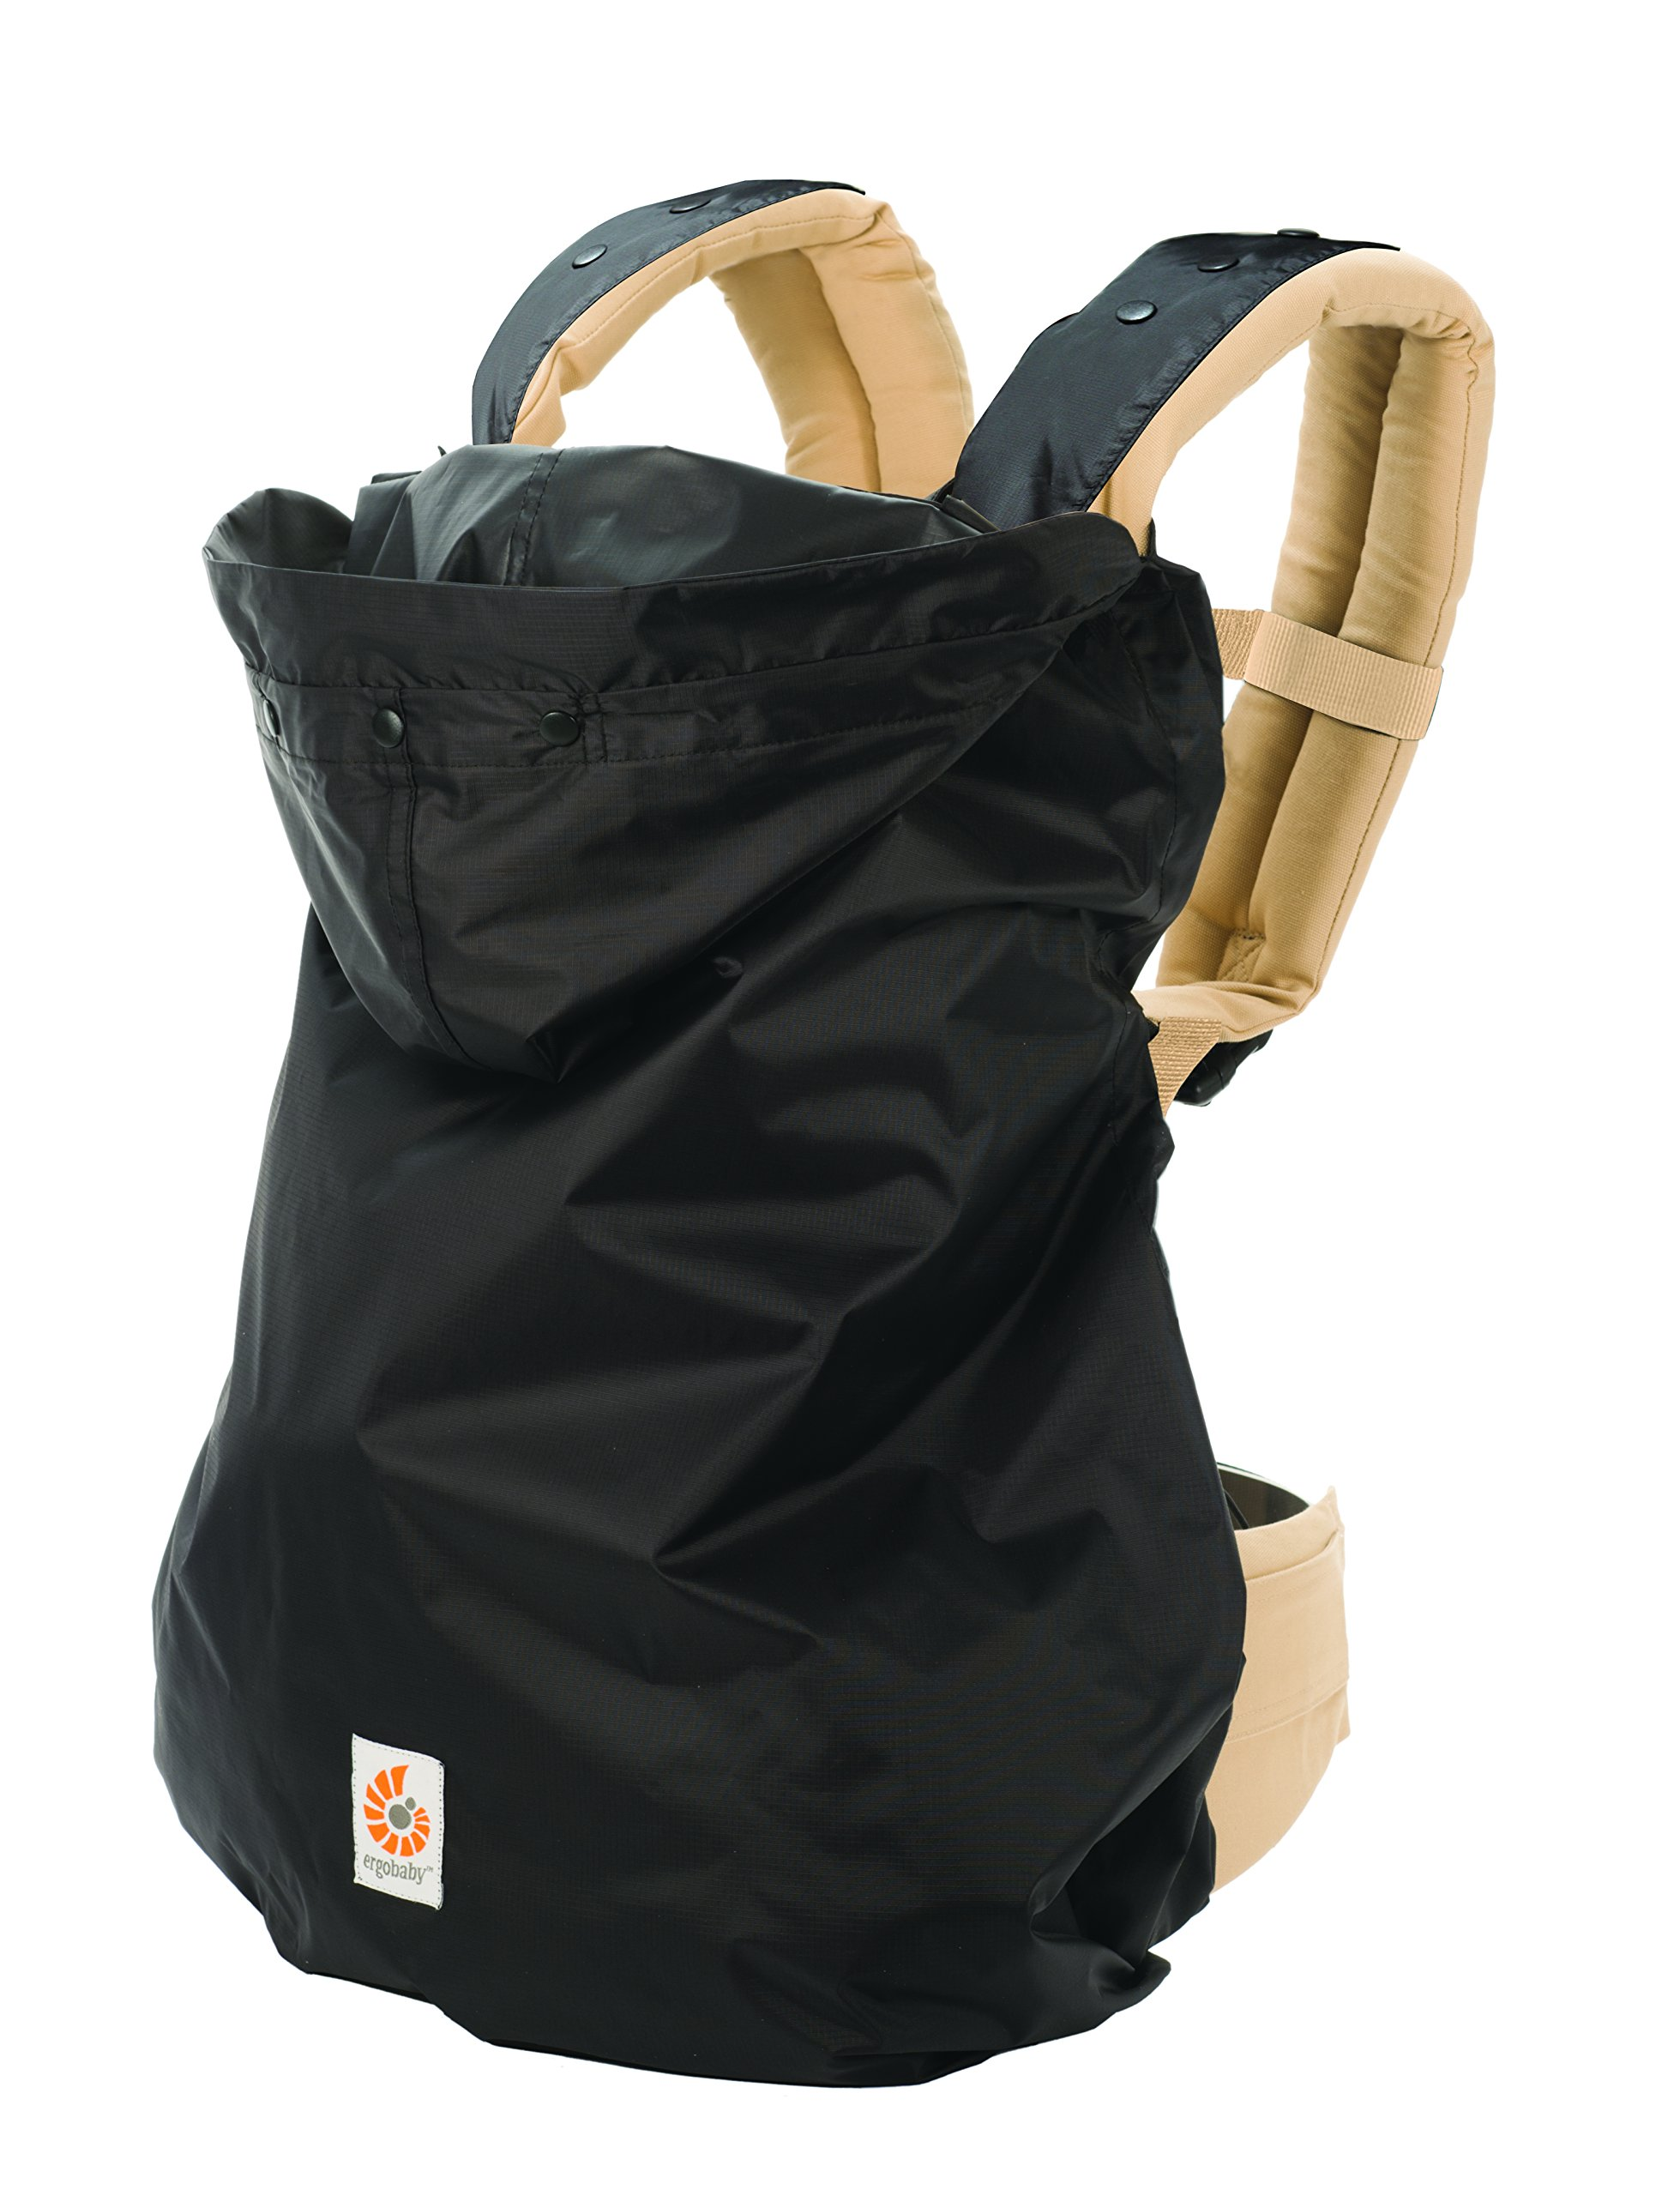 Ergobaby Rain Cover (Black) Ergobaby 100% Polyester water resistant ripstop fabric Snaps attach Rain Cover to the carrier at shoulder straps Elasticized hood 1